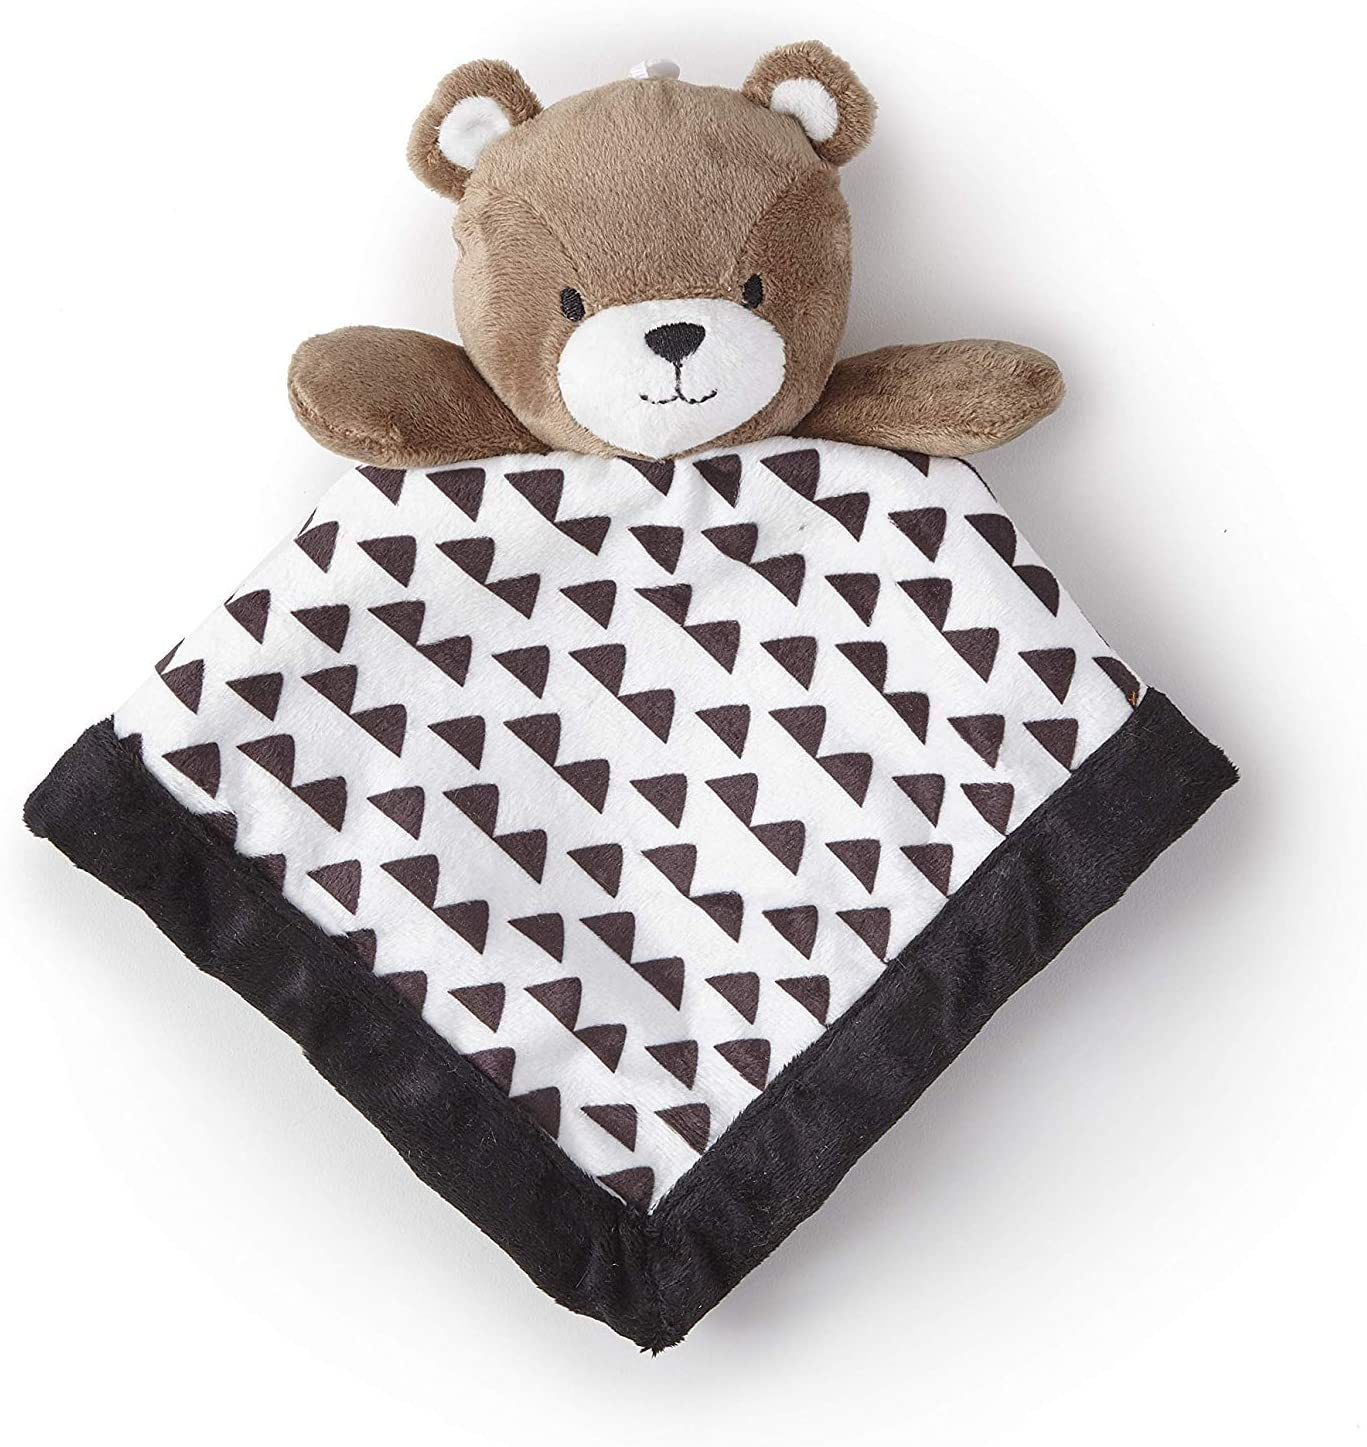 Bear Plush Security Blanket [並行輸入品]